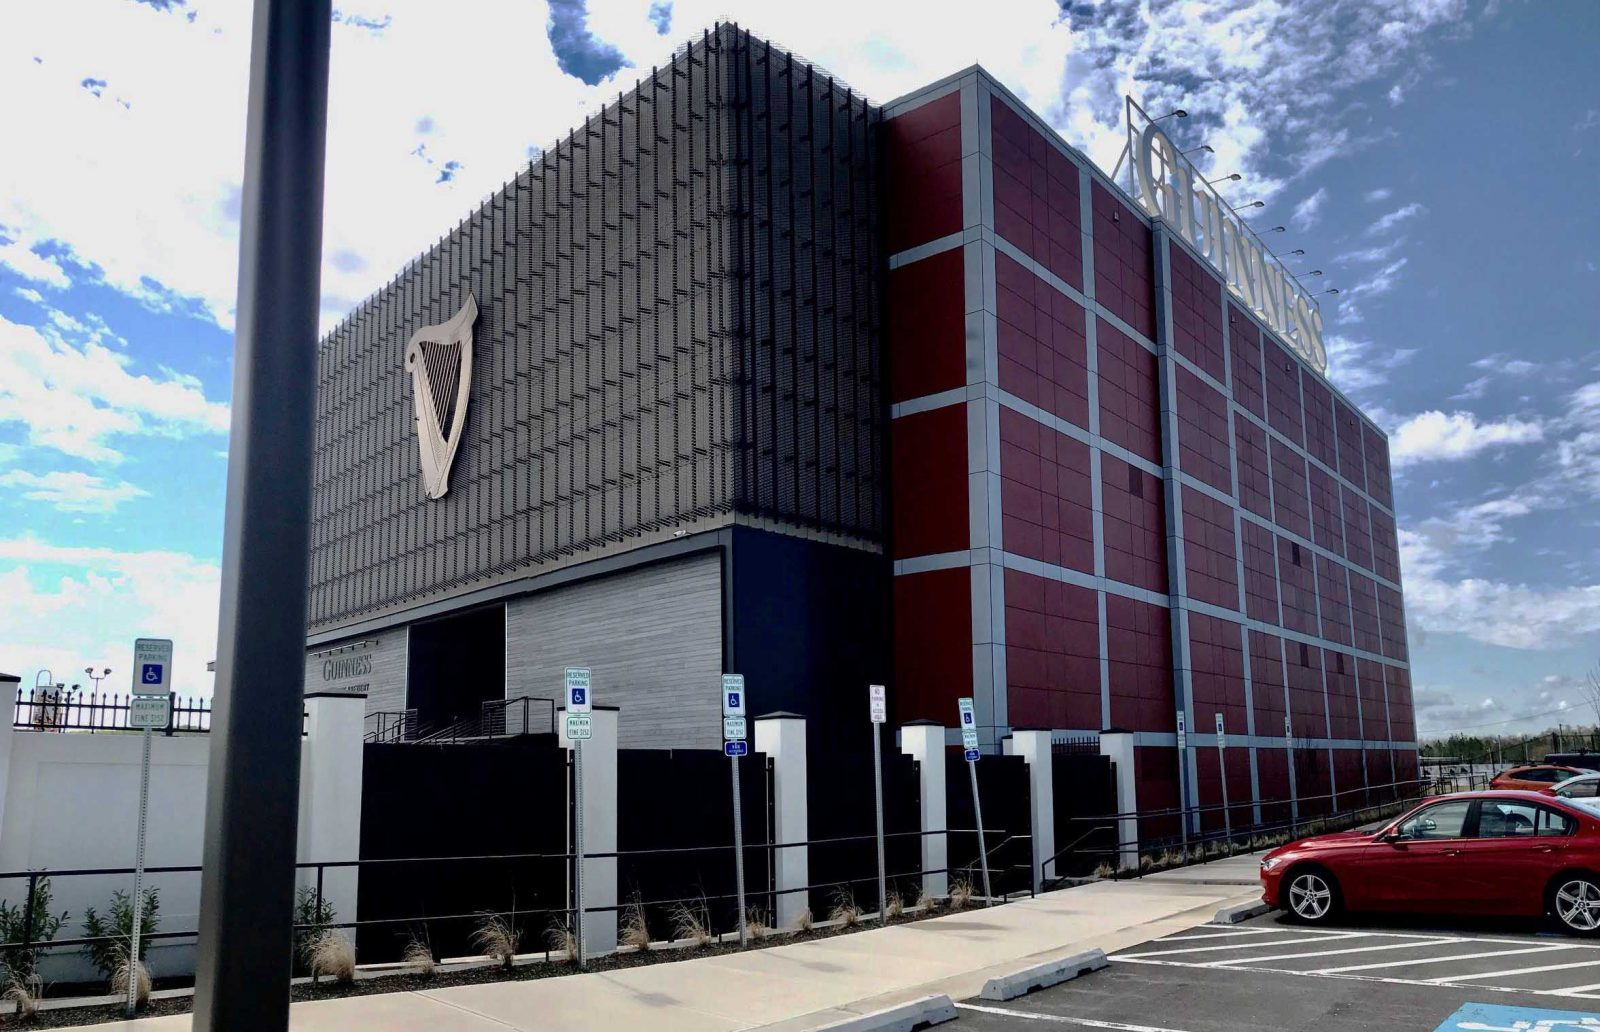 426. Guinness Open Gate Brewery, Baltimore MD, 2019